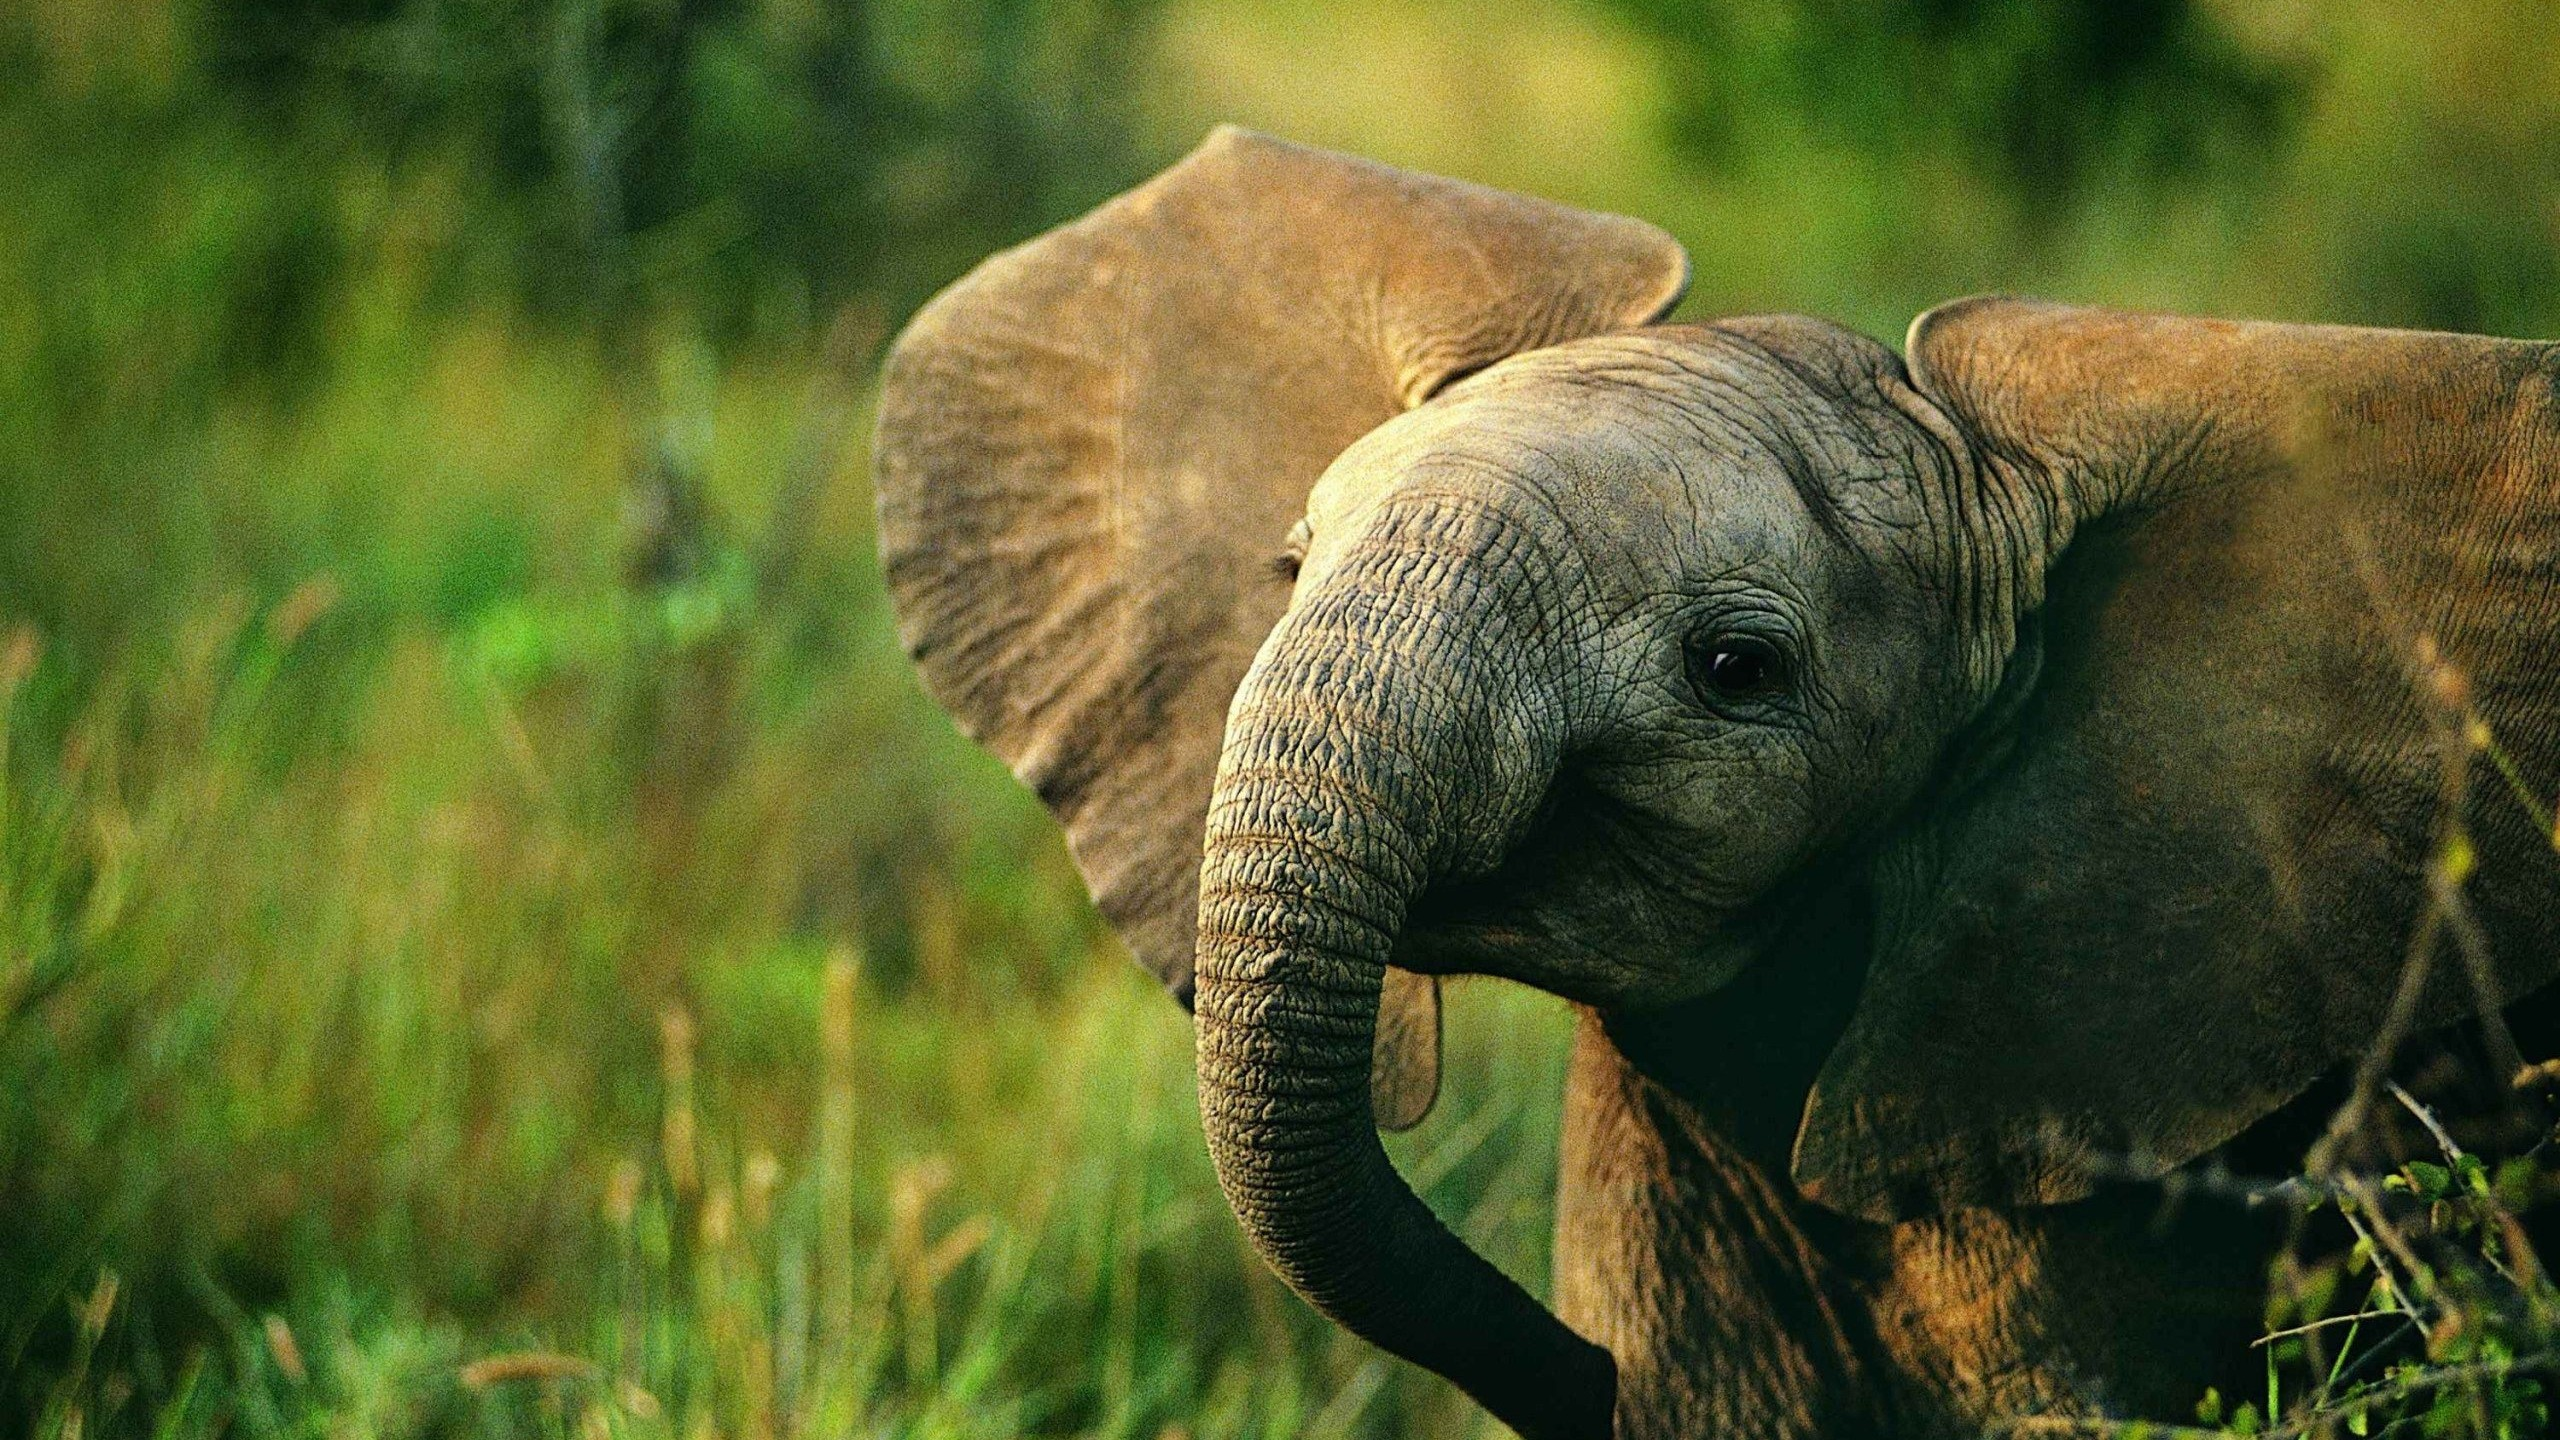 60 Beautiful and Cute Animal Wallpapers 2560x1440